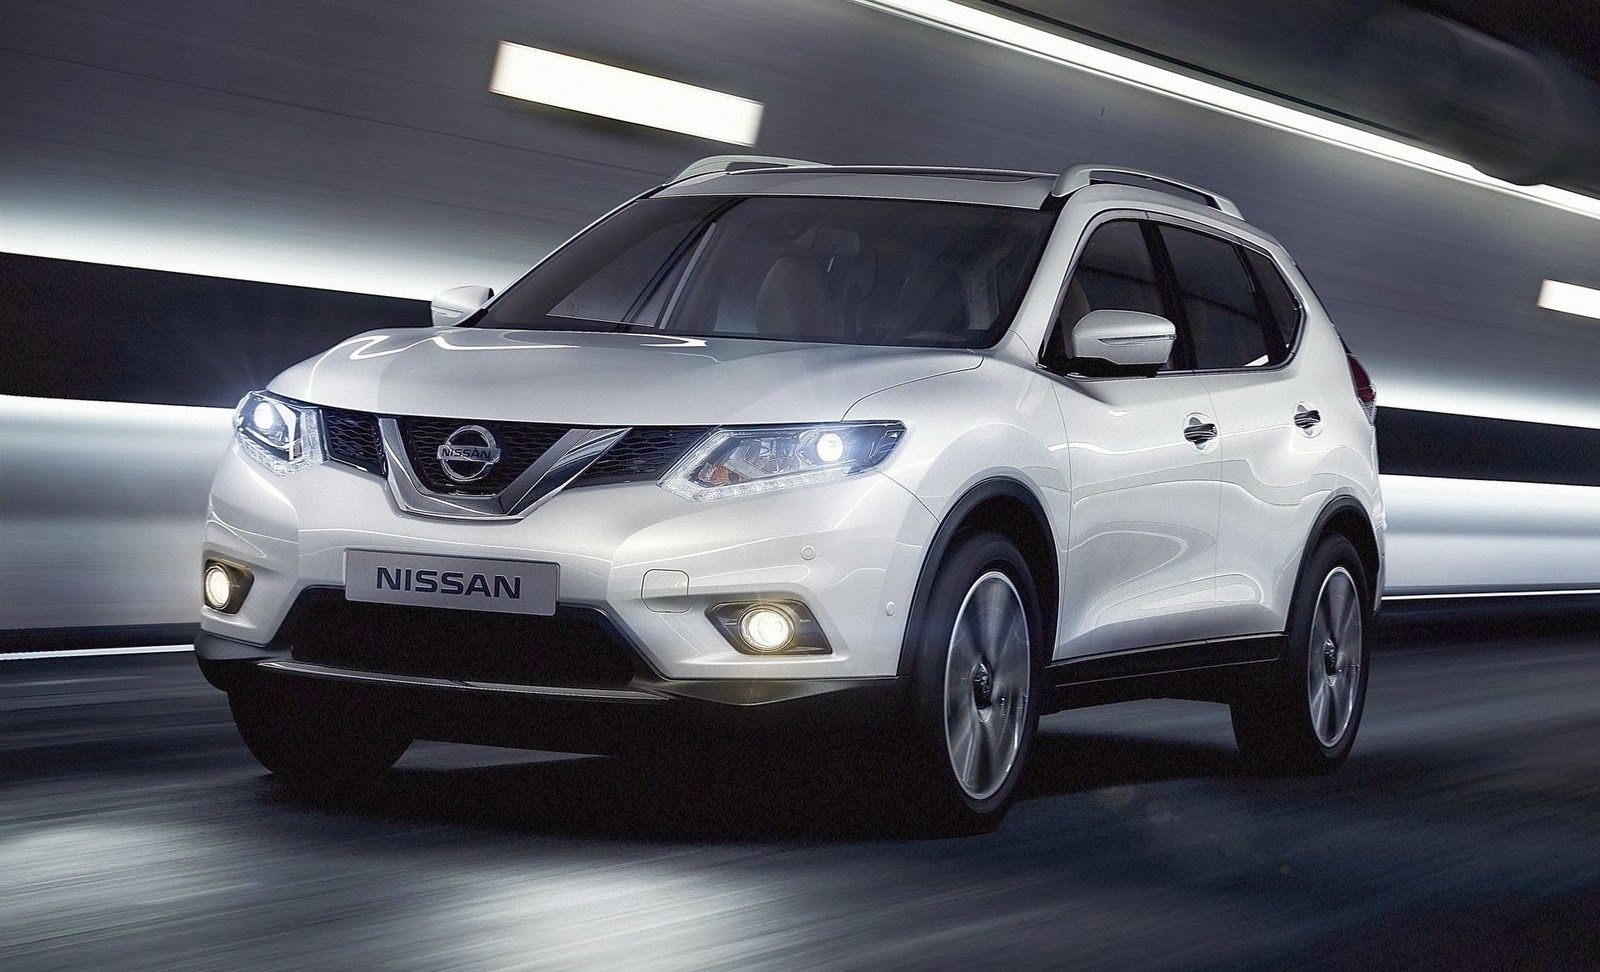 India Bound Next Generation Nissan X Trail Unpacked At Giias 2015 Nissan Upcoming Cars Automobile